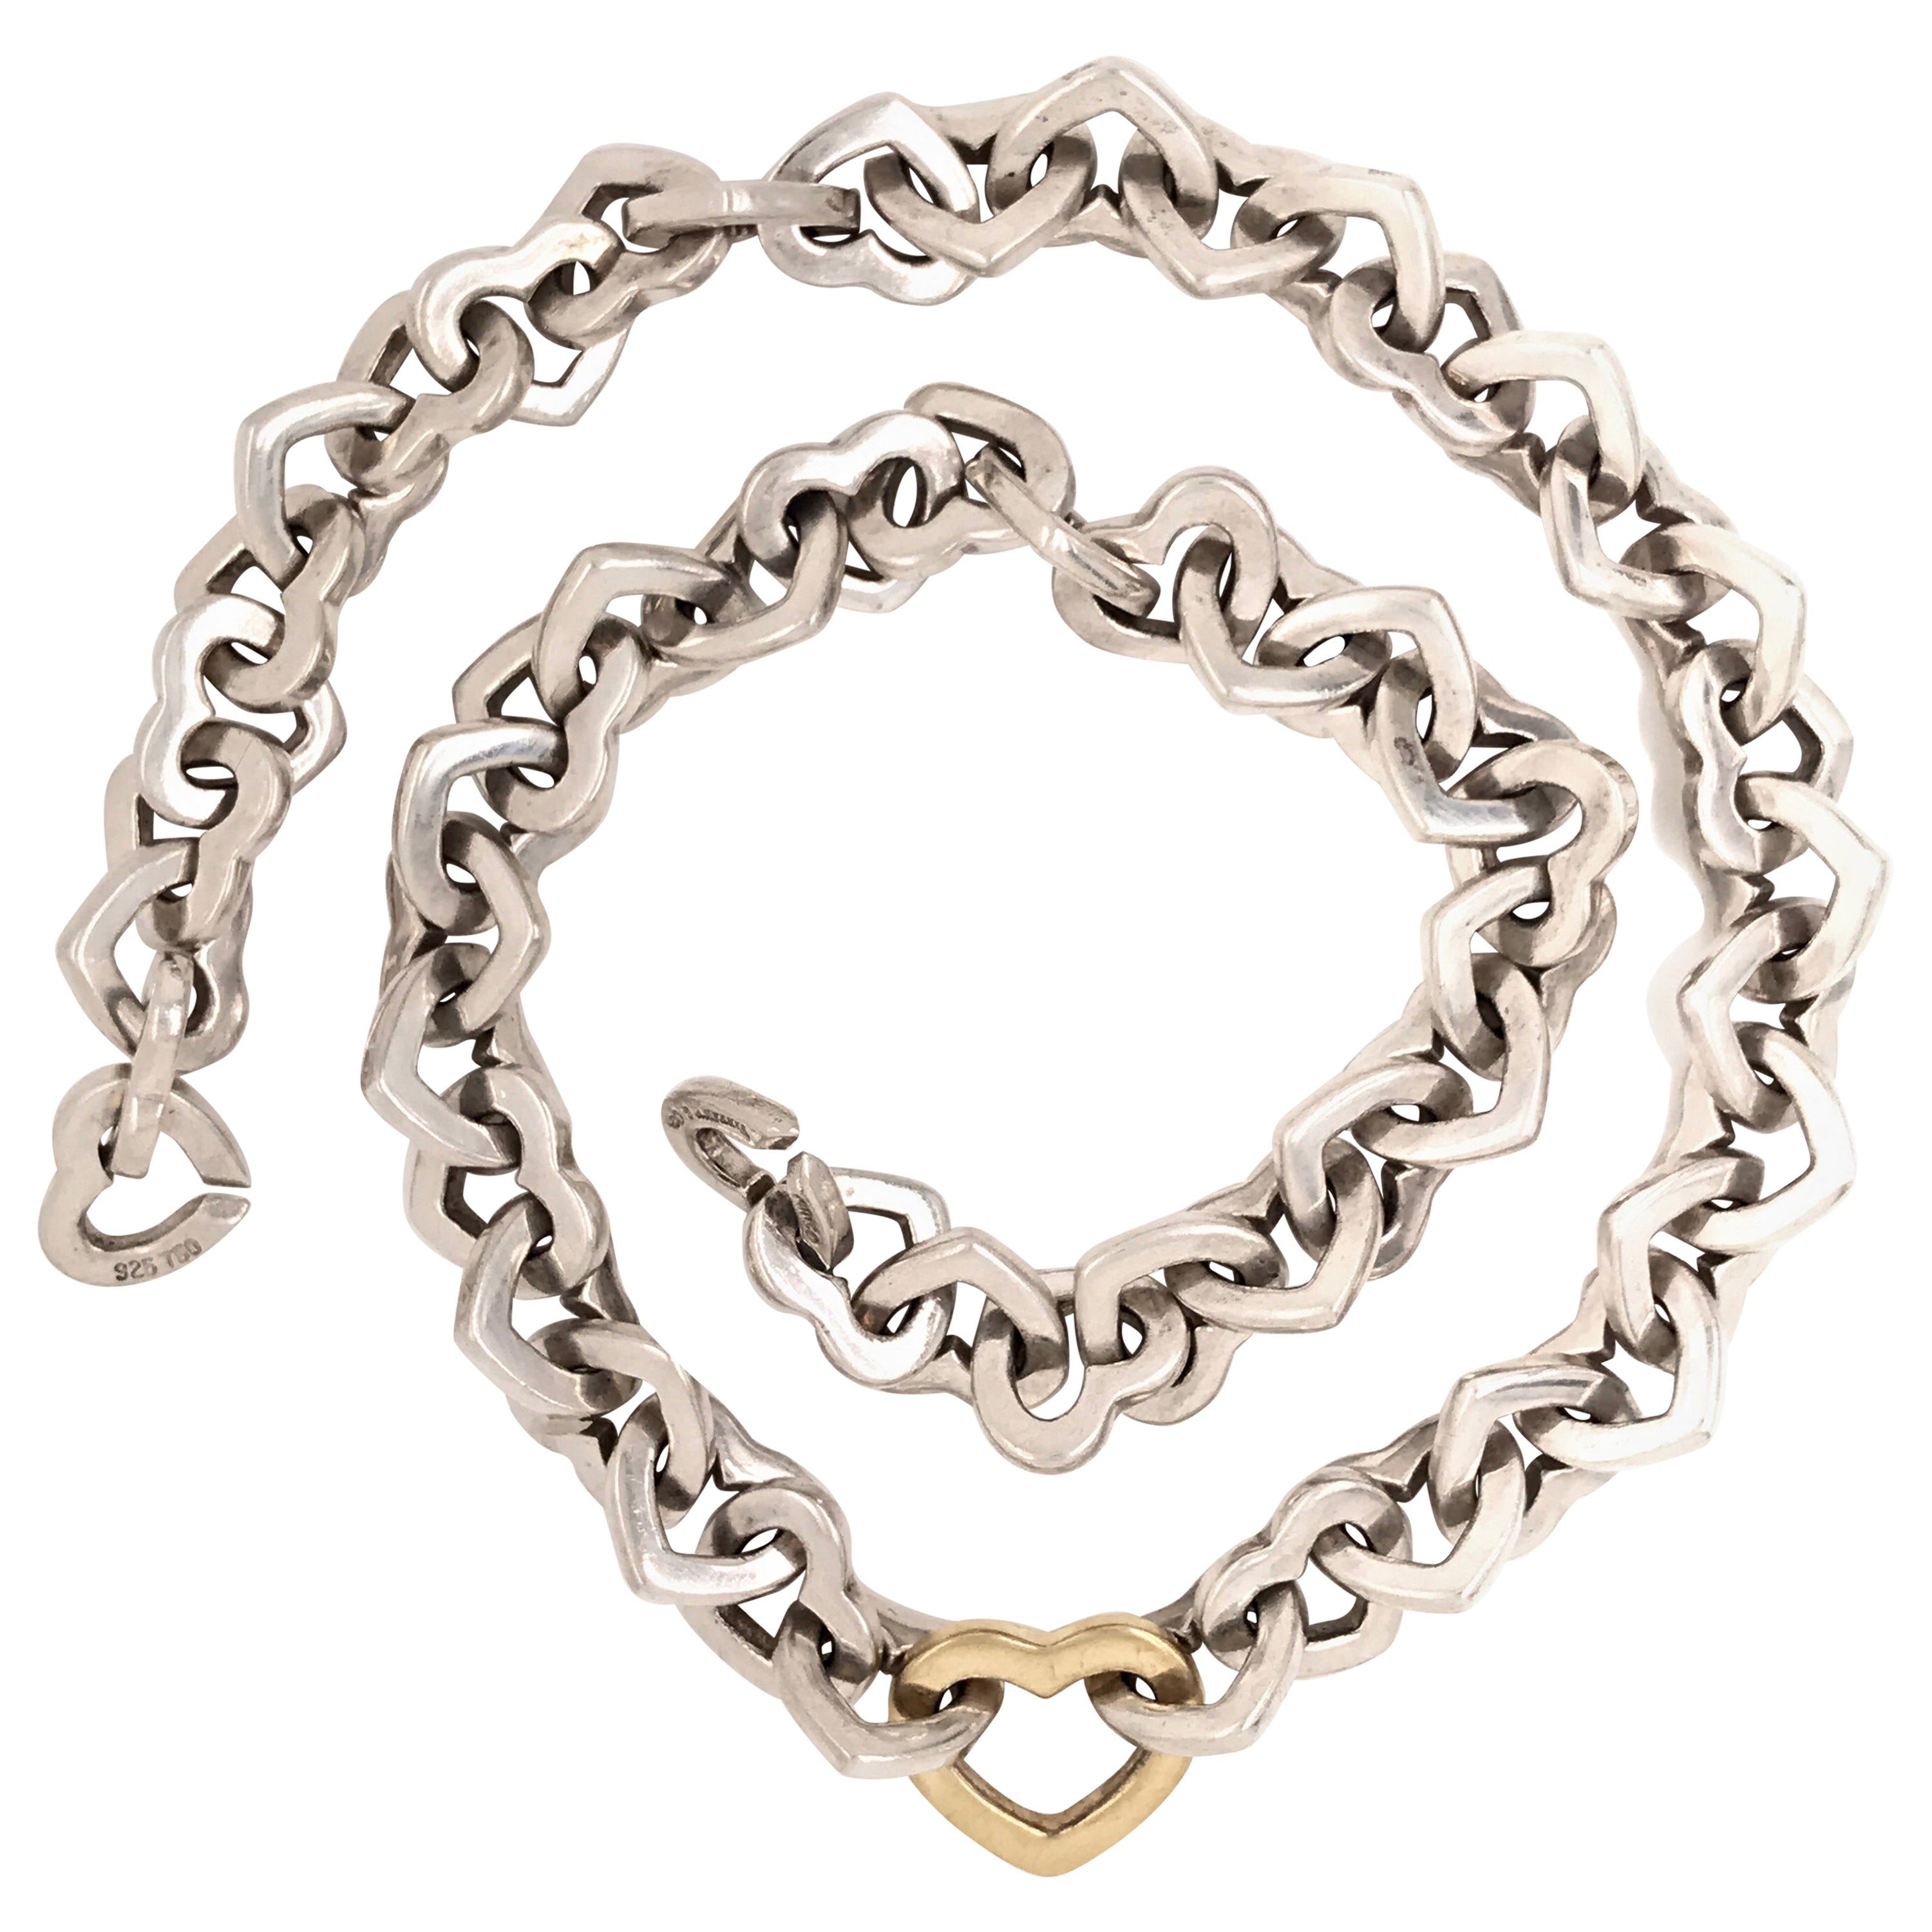 Tiffany & Co. Heart Link Sterling Silver and 18 Karat Gold Necklace, 2000